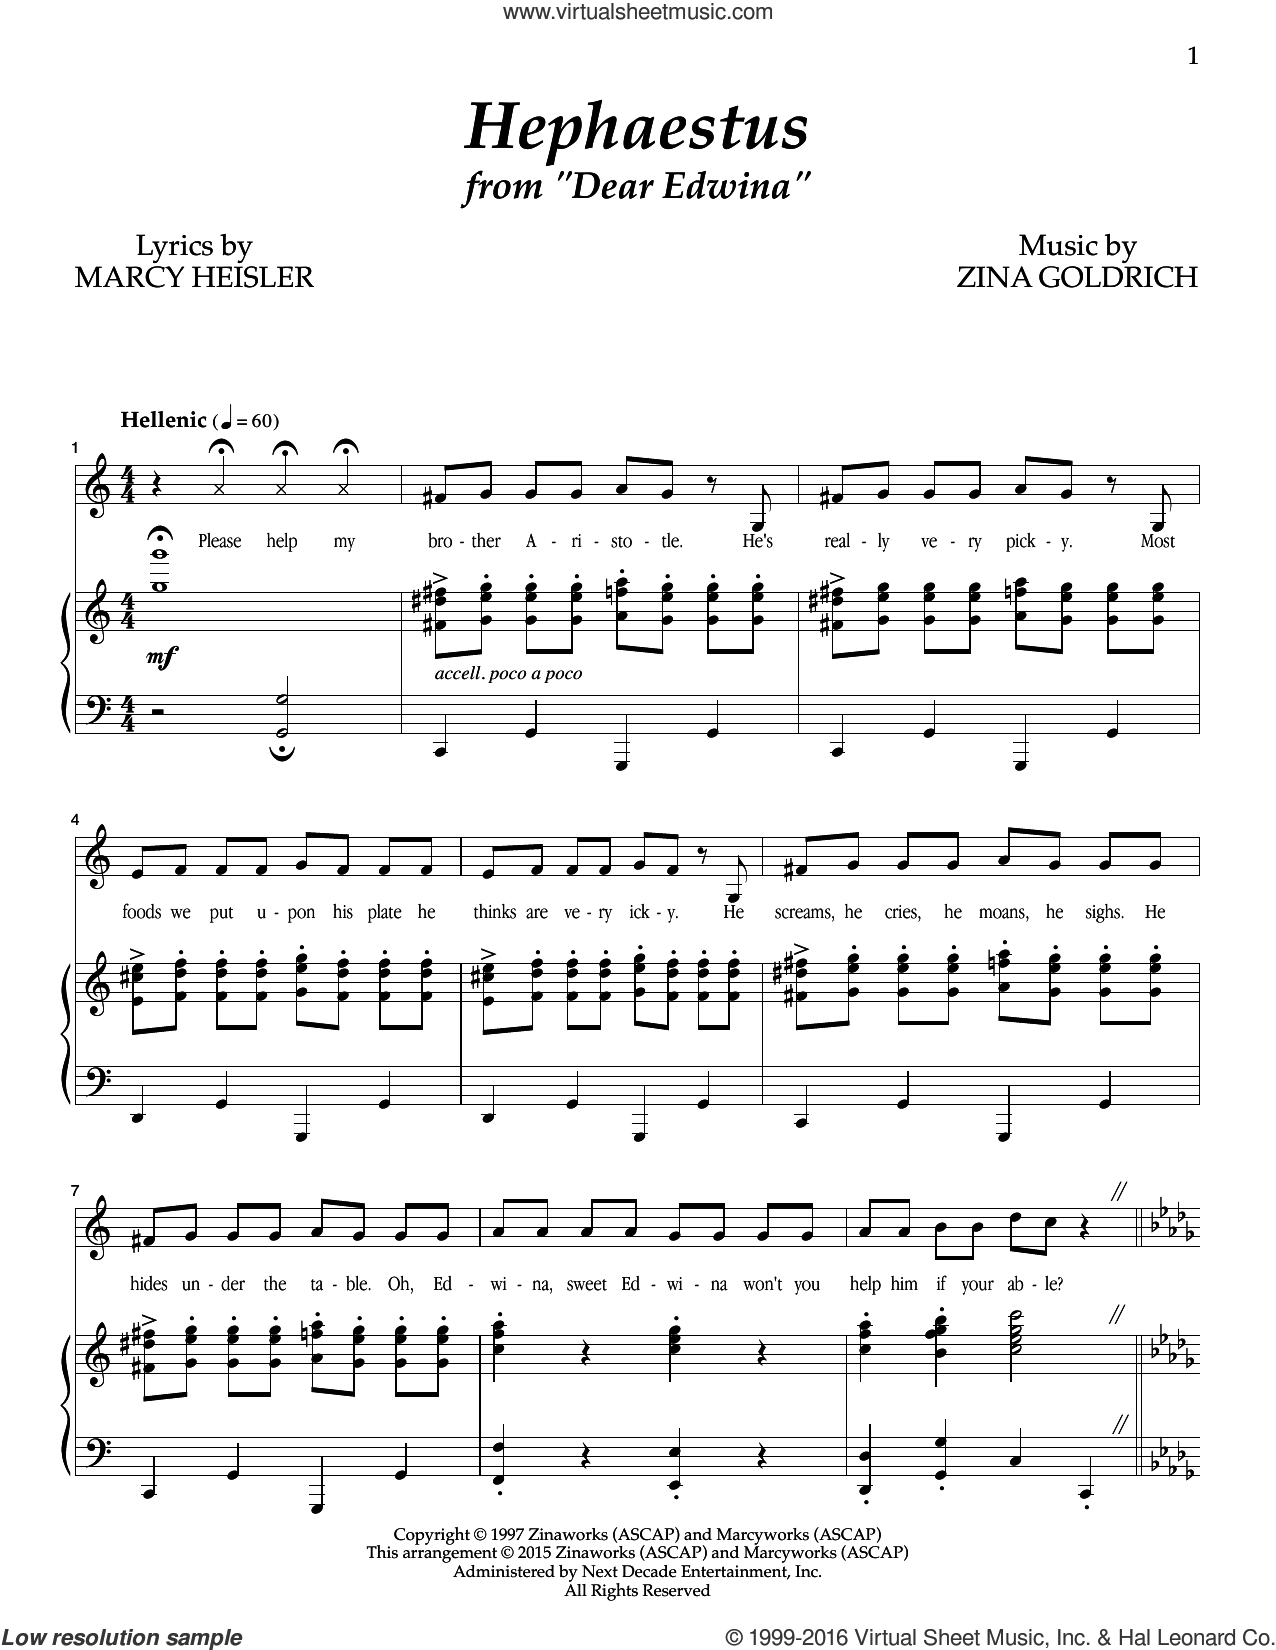 Hephaestus sheet music for voice and piano by Marcy Heisler, Goldrich & Heisler and Zina Goldrich. Score Image Preview.